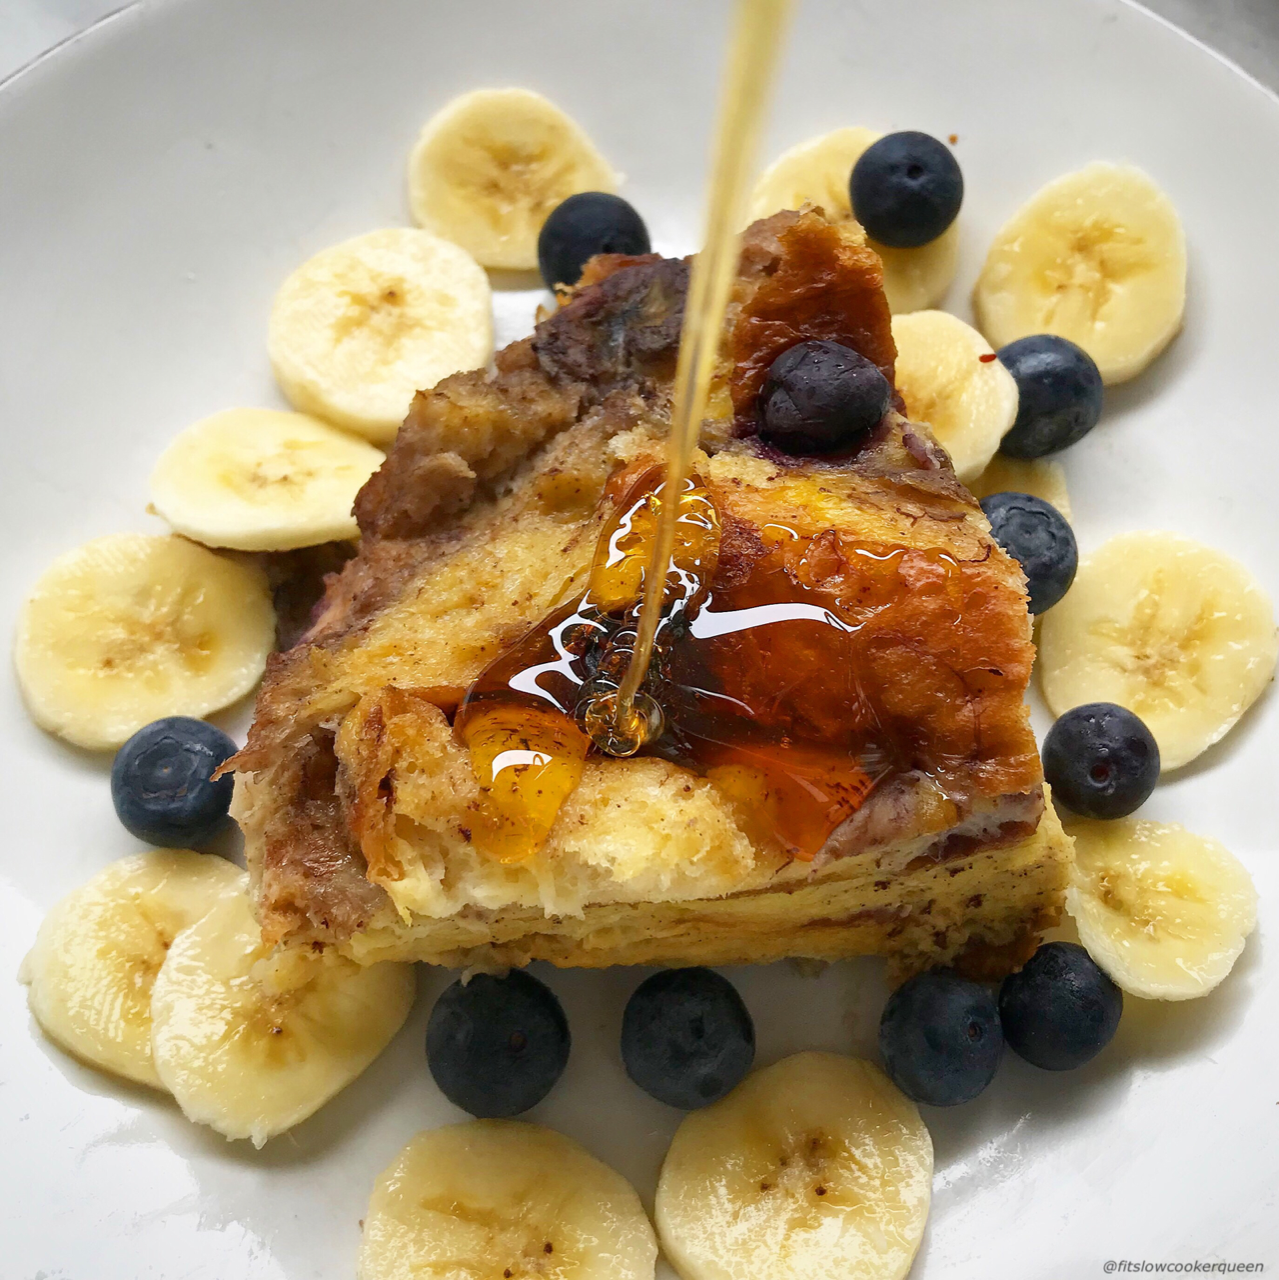 This French toast made with bananas and blueberries cooks overnight in the slow cooker. Wake up to an aromatic kitchen and fluffy French toast.